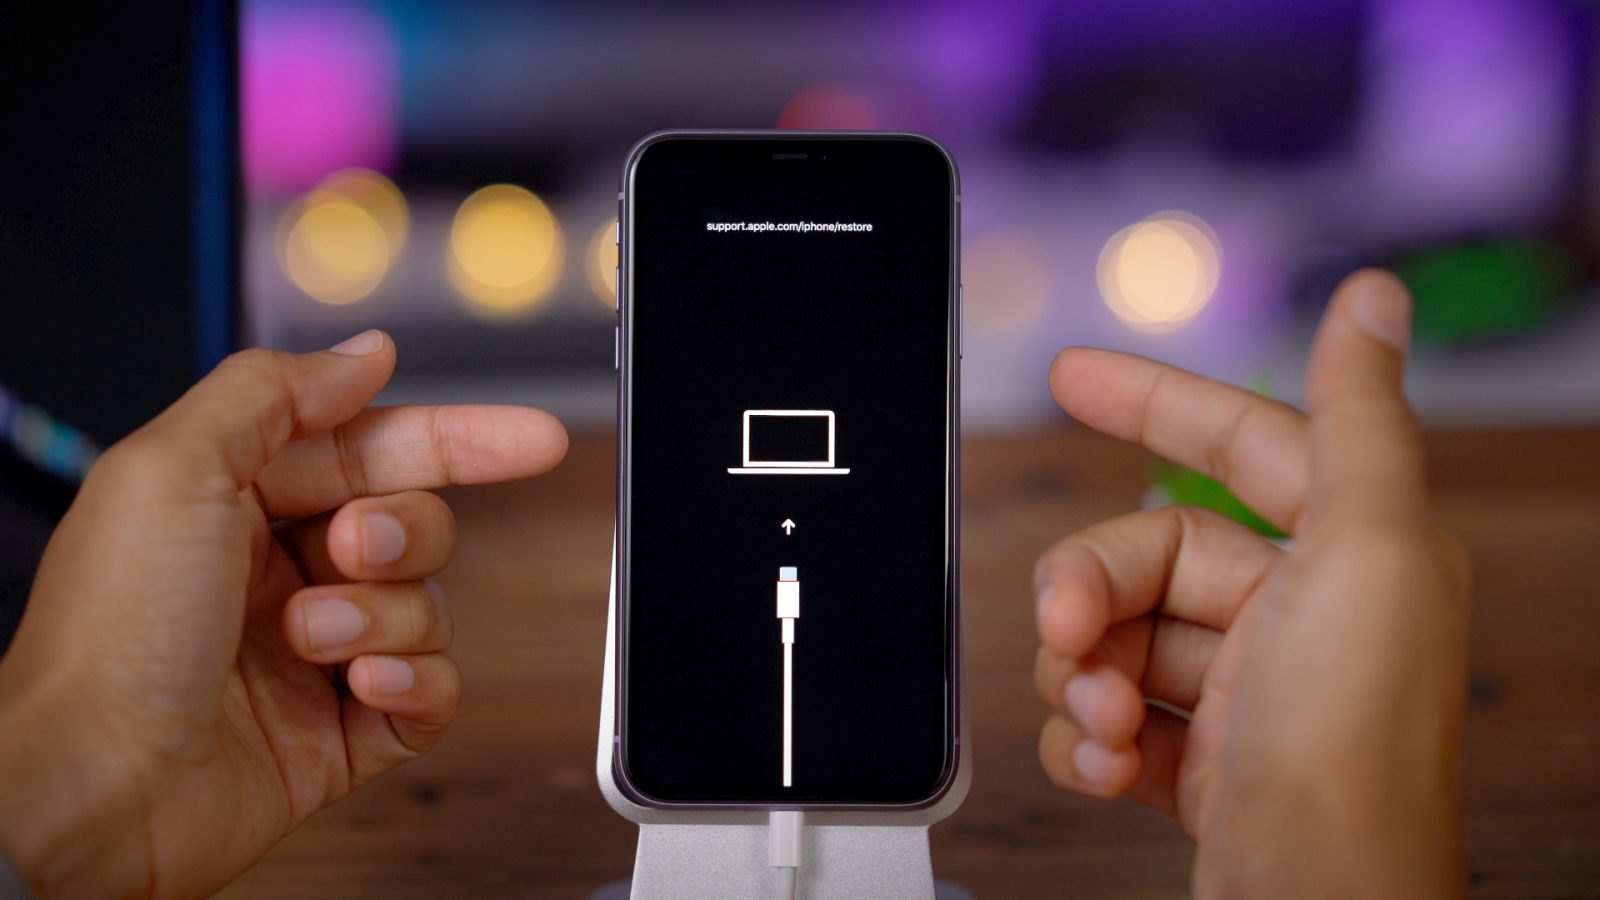 Force restart iPhone 11 Pro Max. DFU. recovery mode. SOS. power off